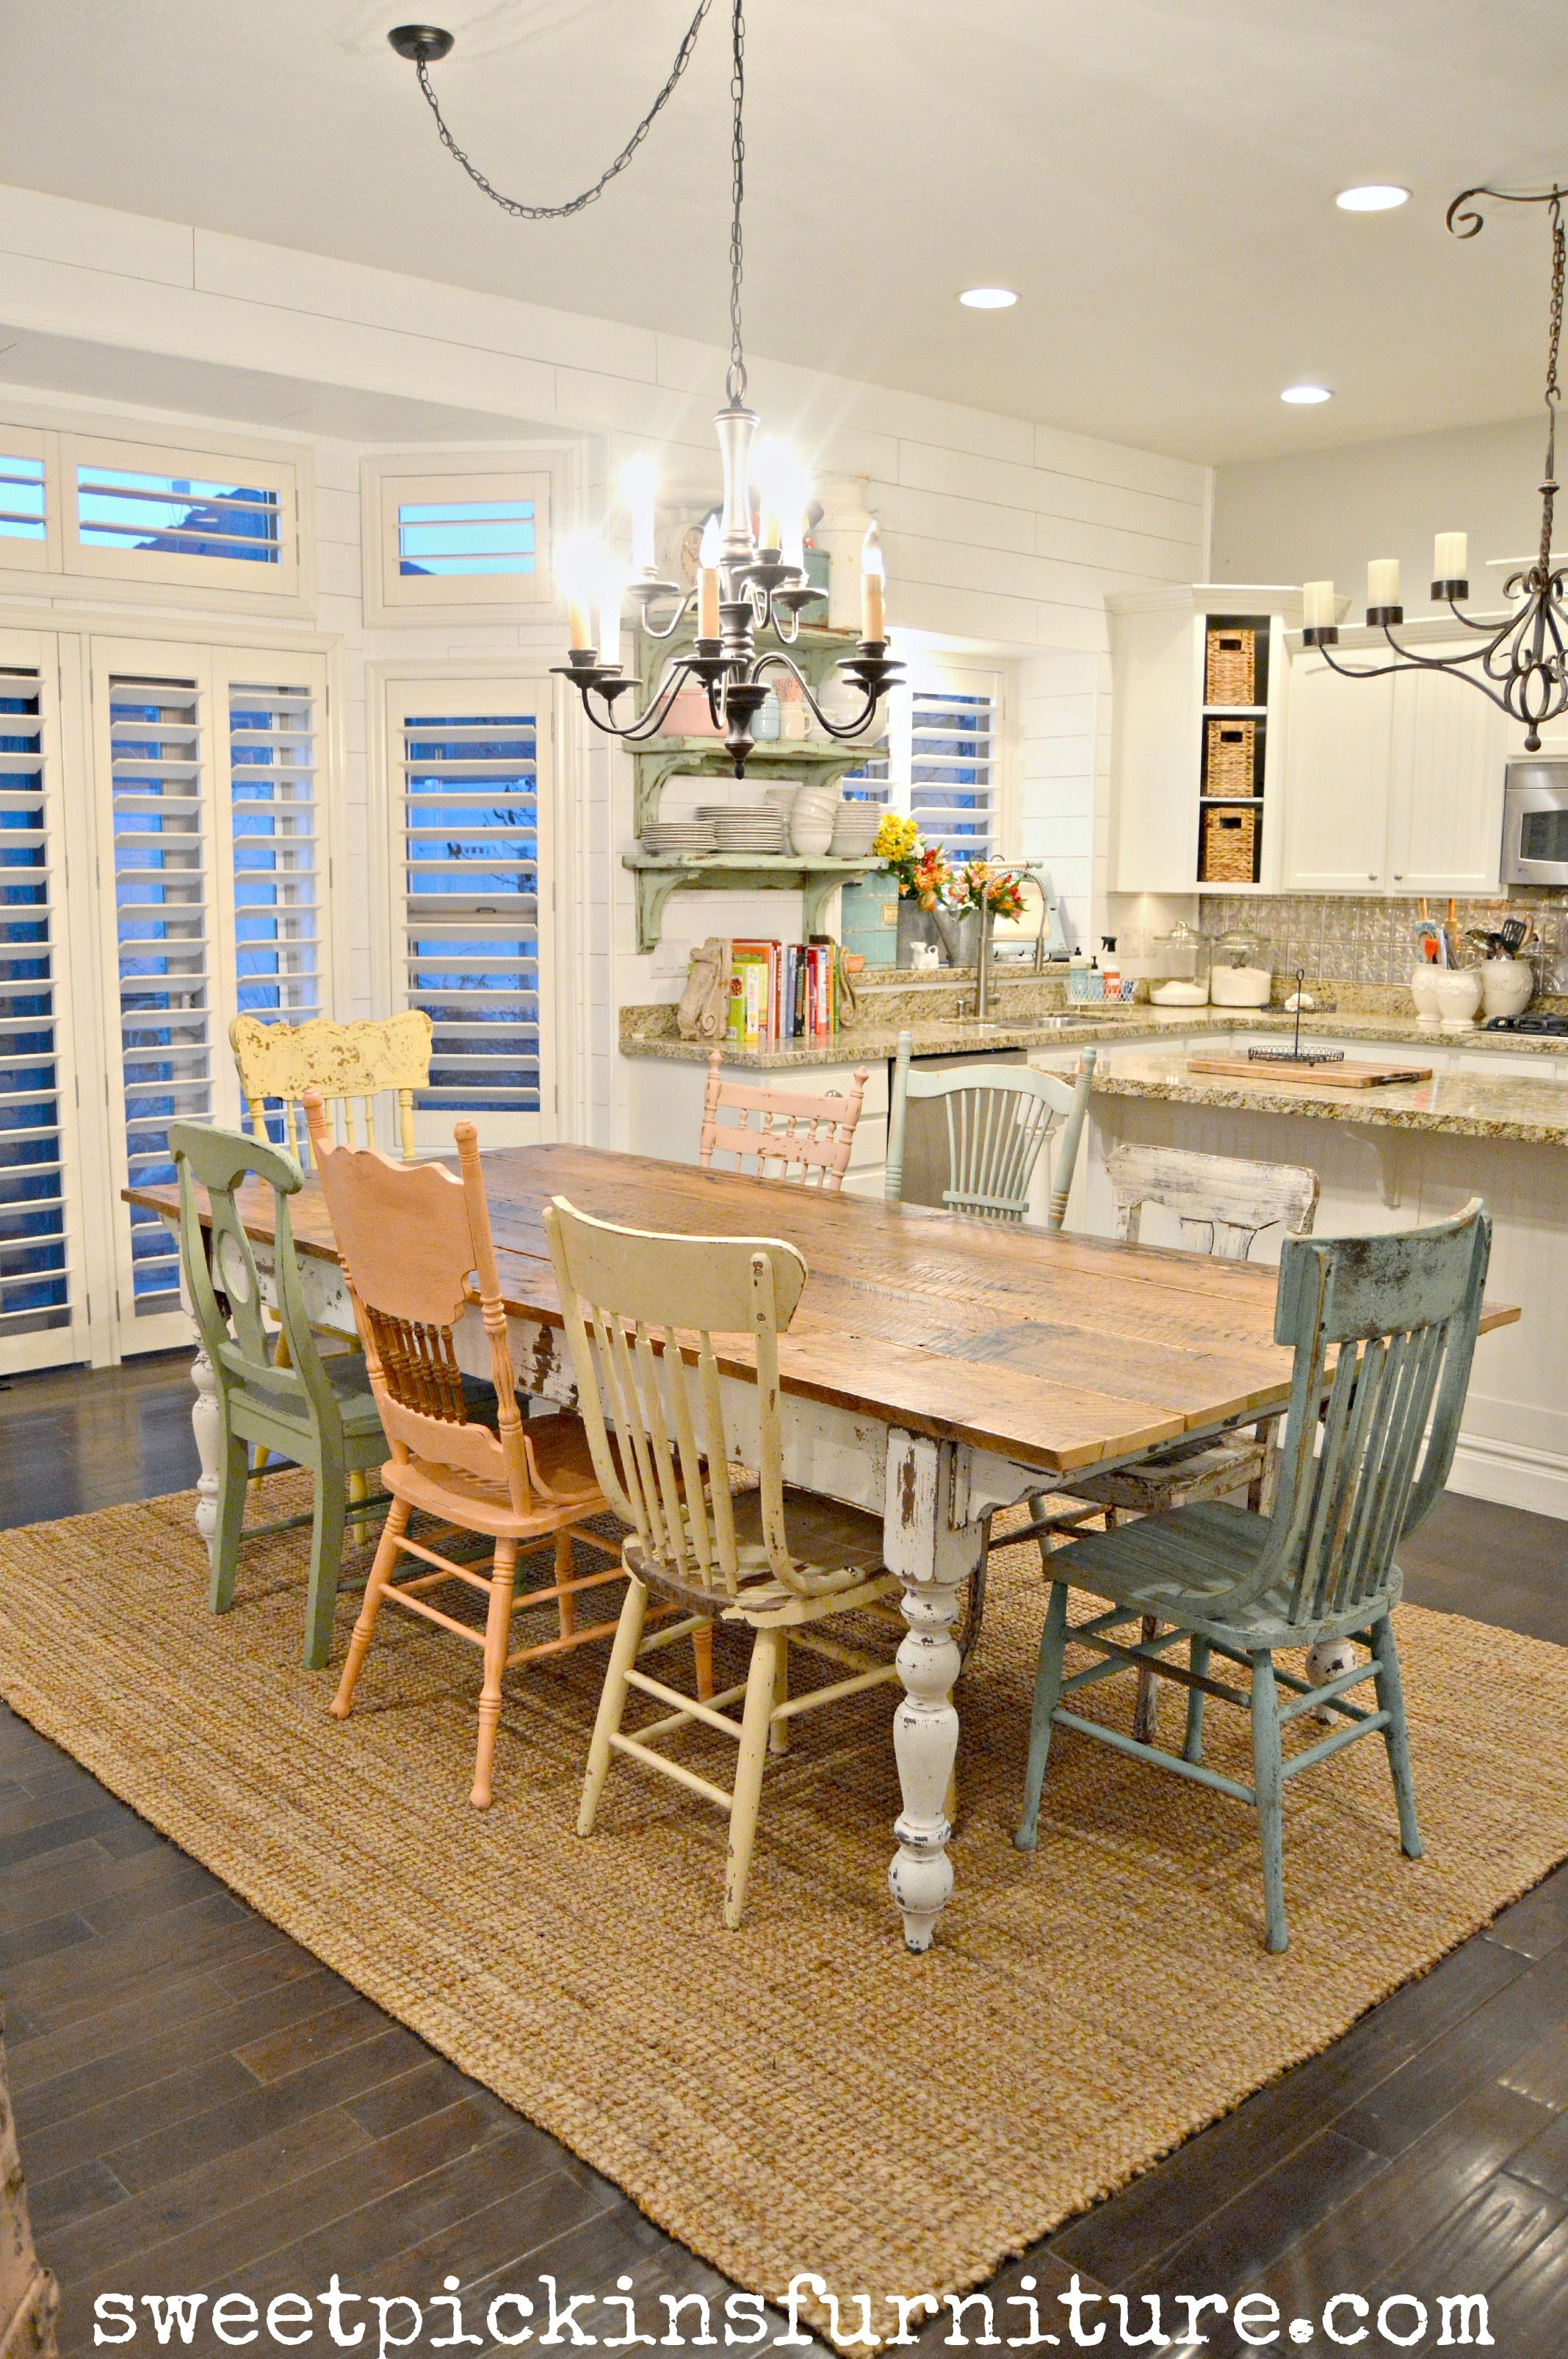 Farmhouse Dining Chairs Lift Chair Recliners Columbus Ohio Kitchen How To Style Your Like One Ana Kitchens Mix A Huge Number Of Particular Styles Cabin Vintage Provincial And Custom As Well Furthermore In Case You Re Imagining Space That